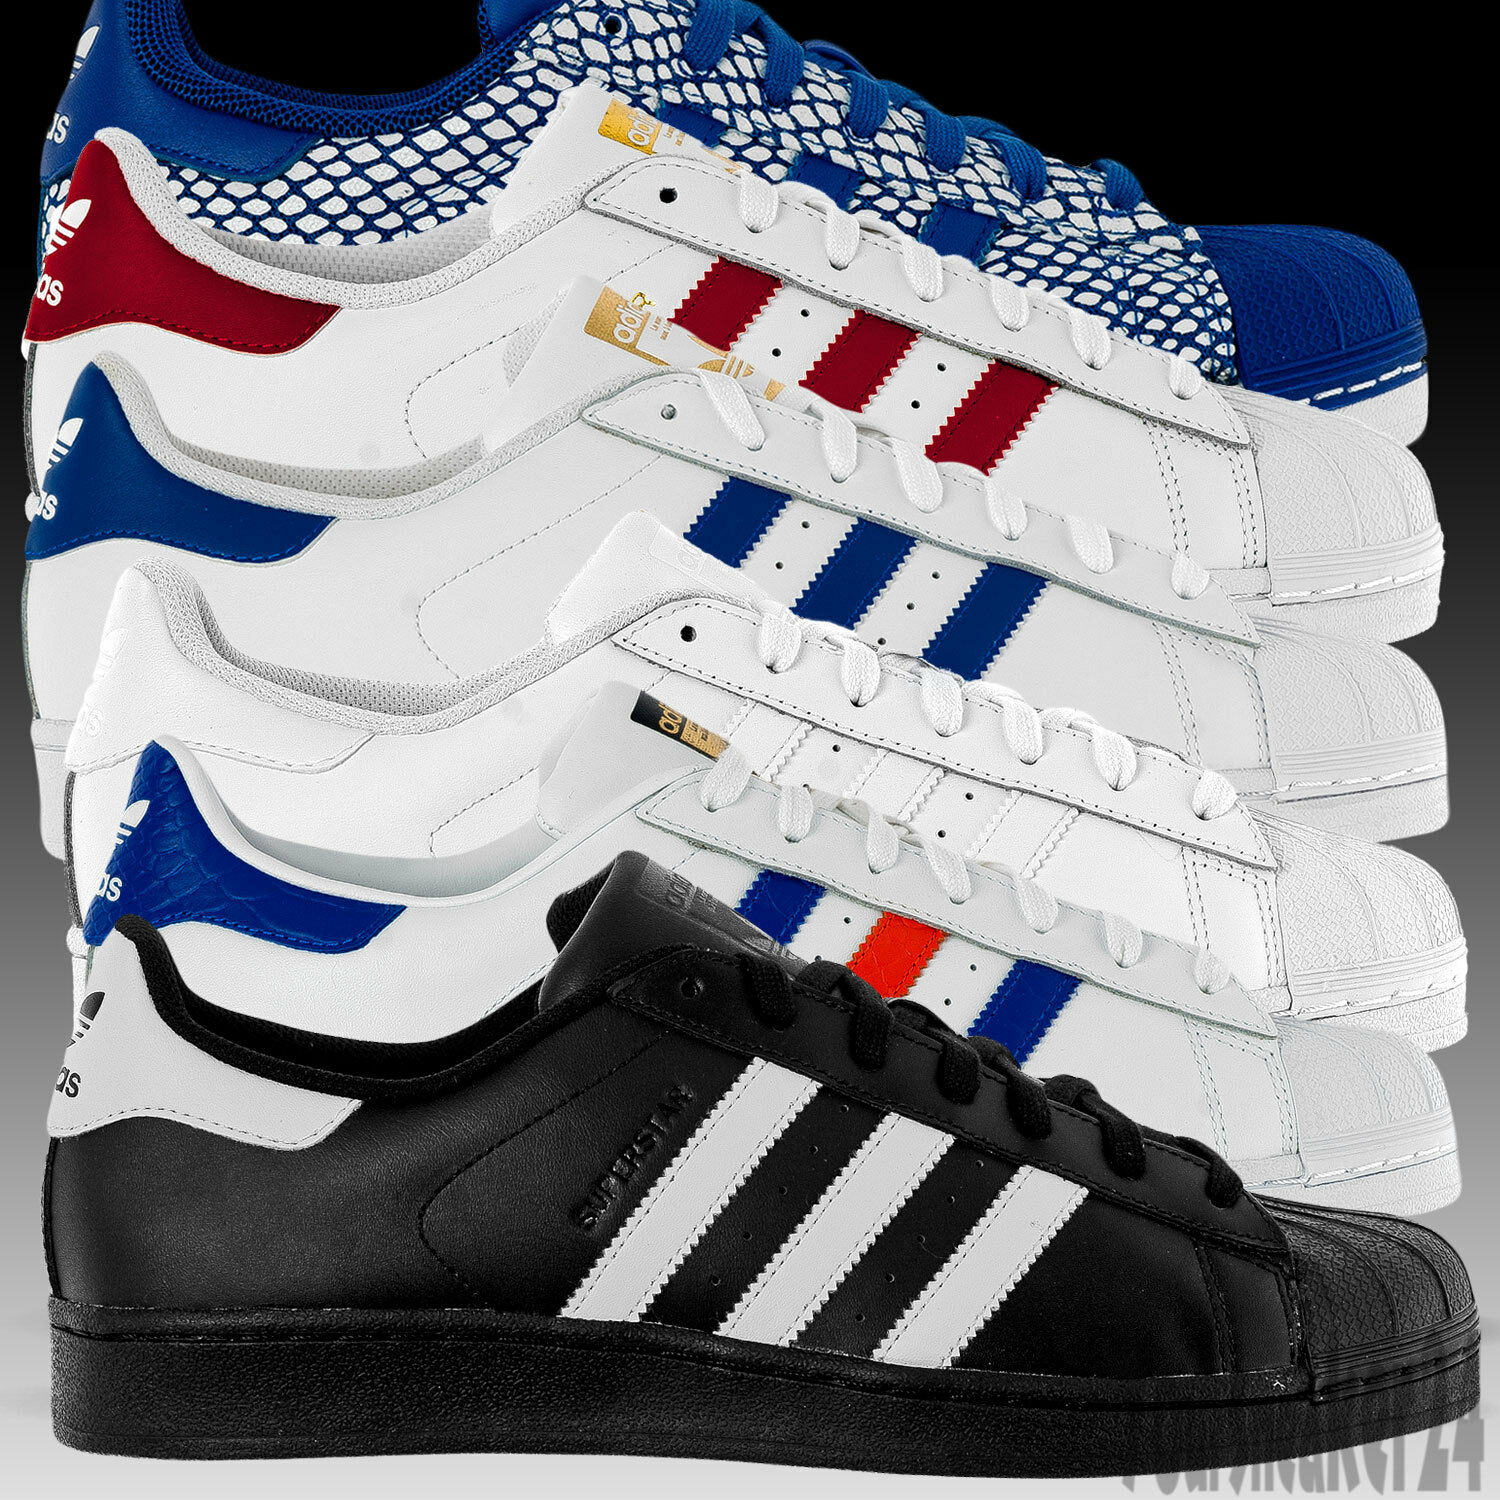 6b965341a Adidas Superstar Foundation All Sizes ZX 8000 Flux durable modeling ...